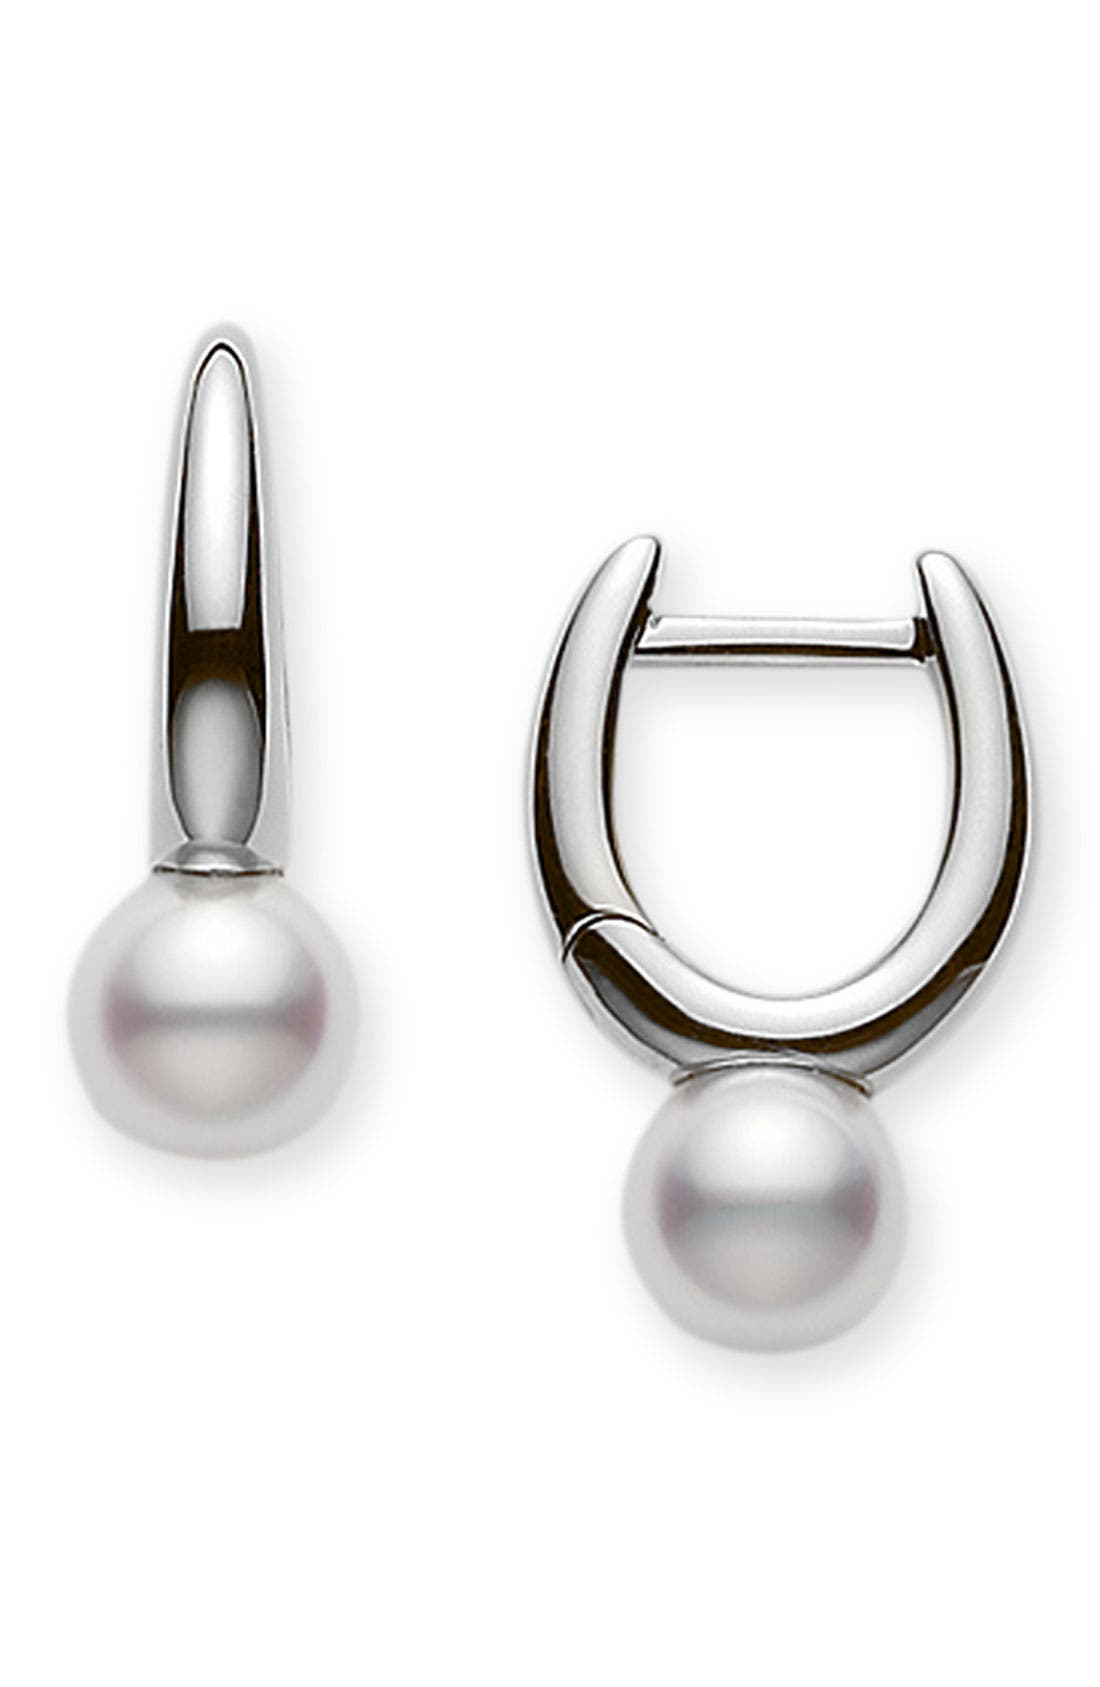 Main Image - Mikimoto Akoya Pearl Earrings